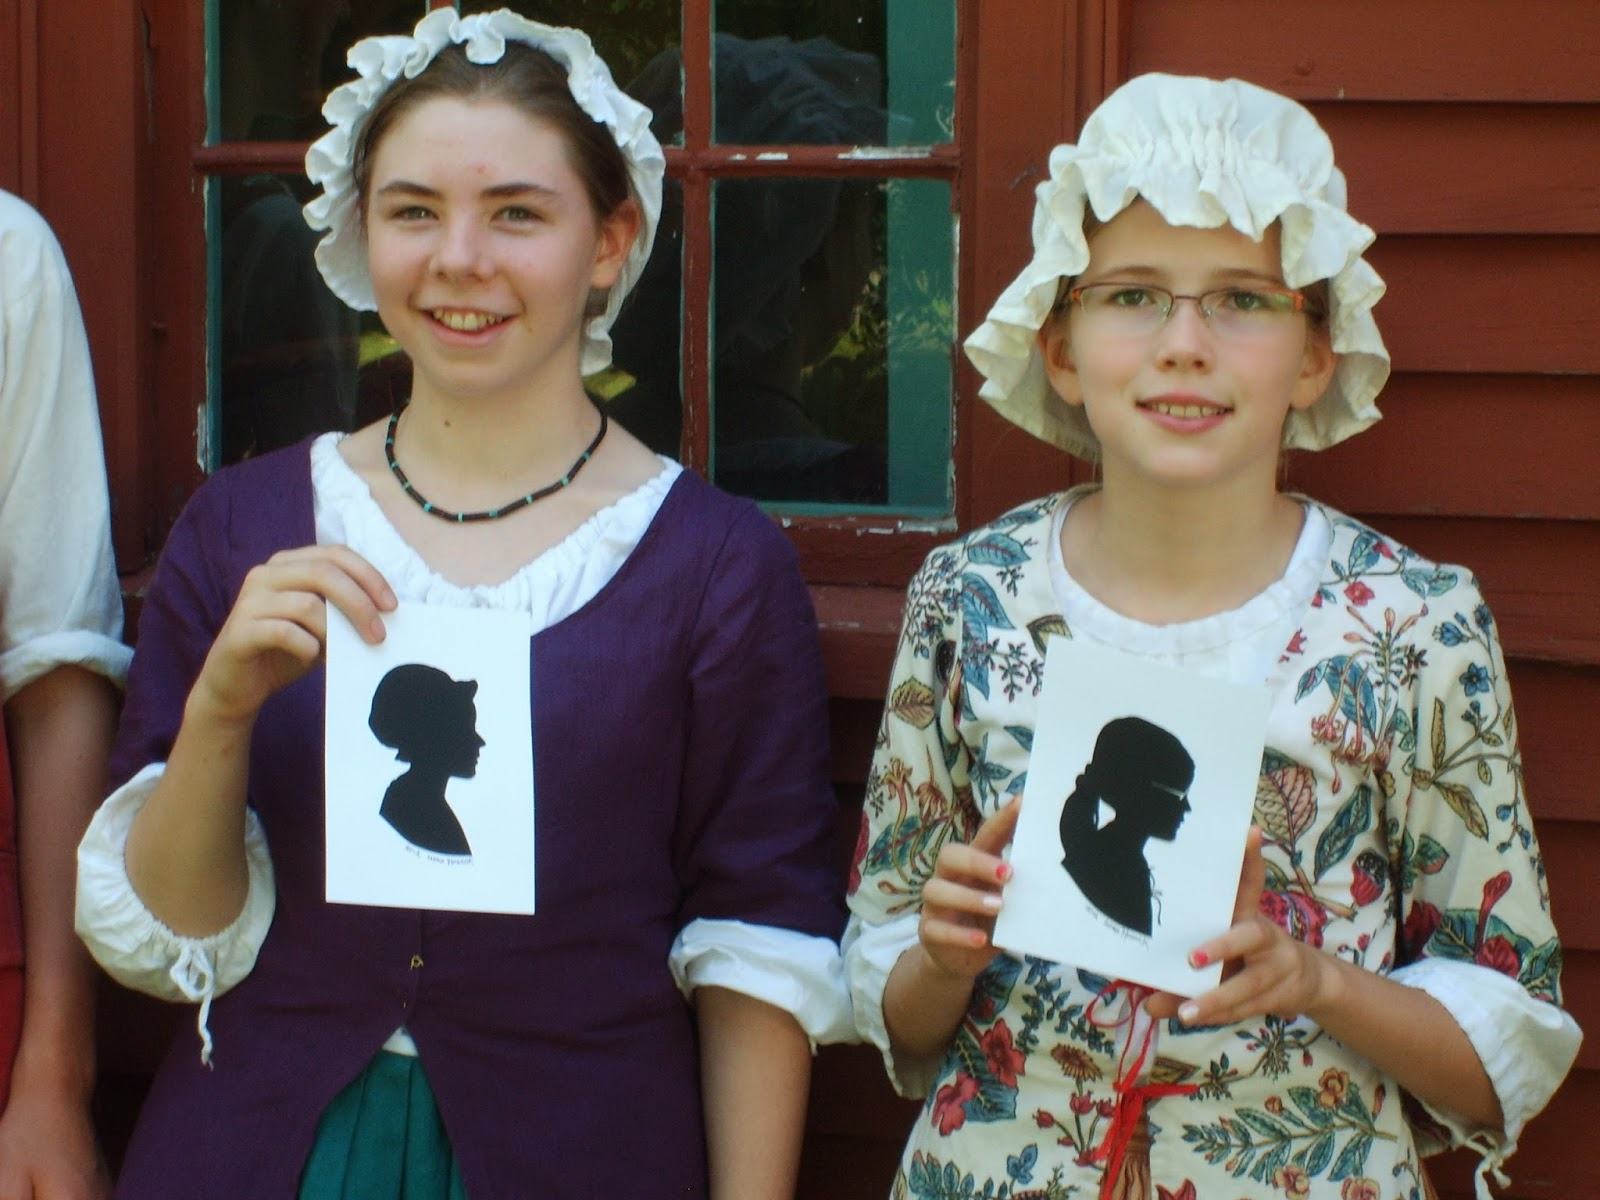 Silhouettes,Traditional dress, Historic York Village, York, Maine